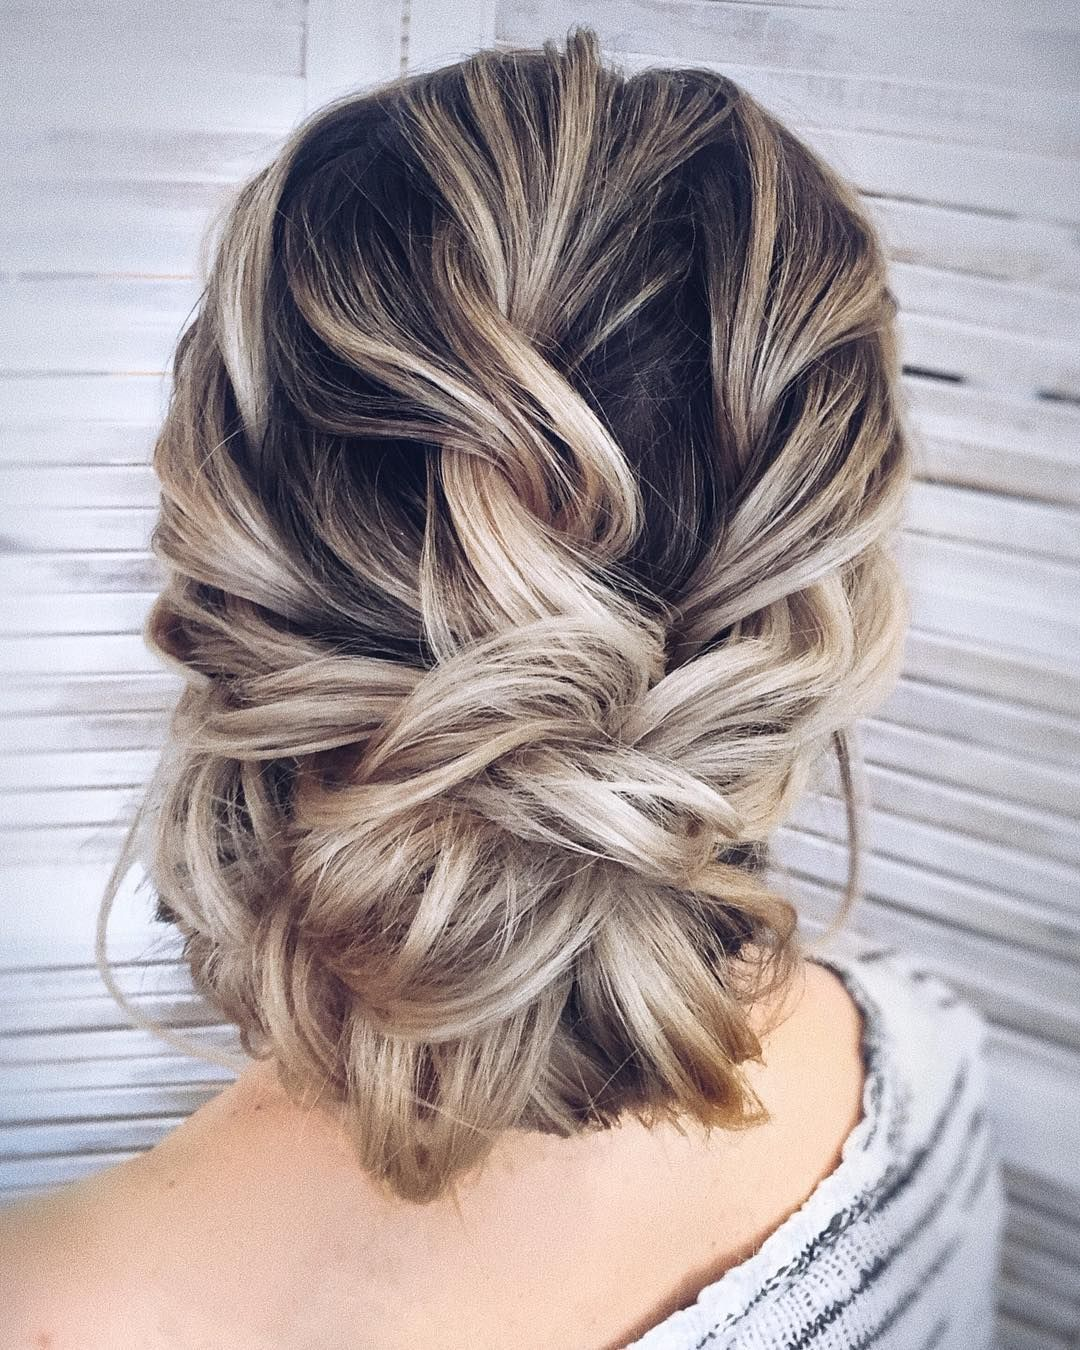 Messy Updo Hairstyles Classy 100 Gorgeous Wedding Hair From Ceremony To Reception  Messy Updo